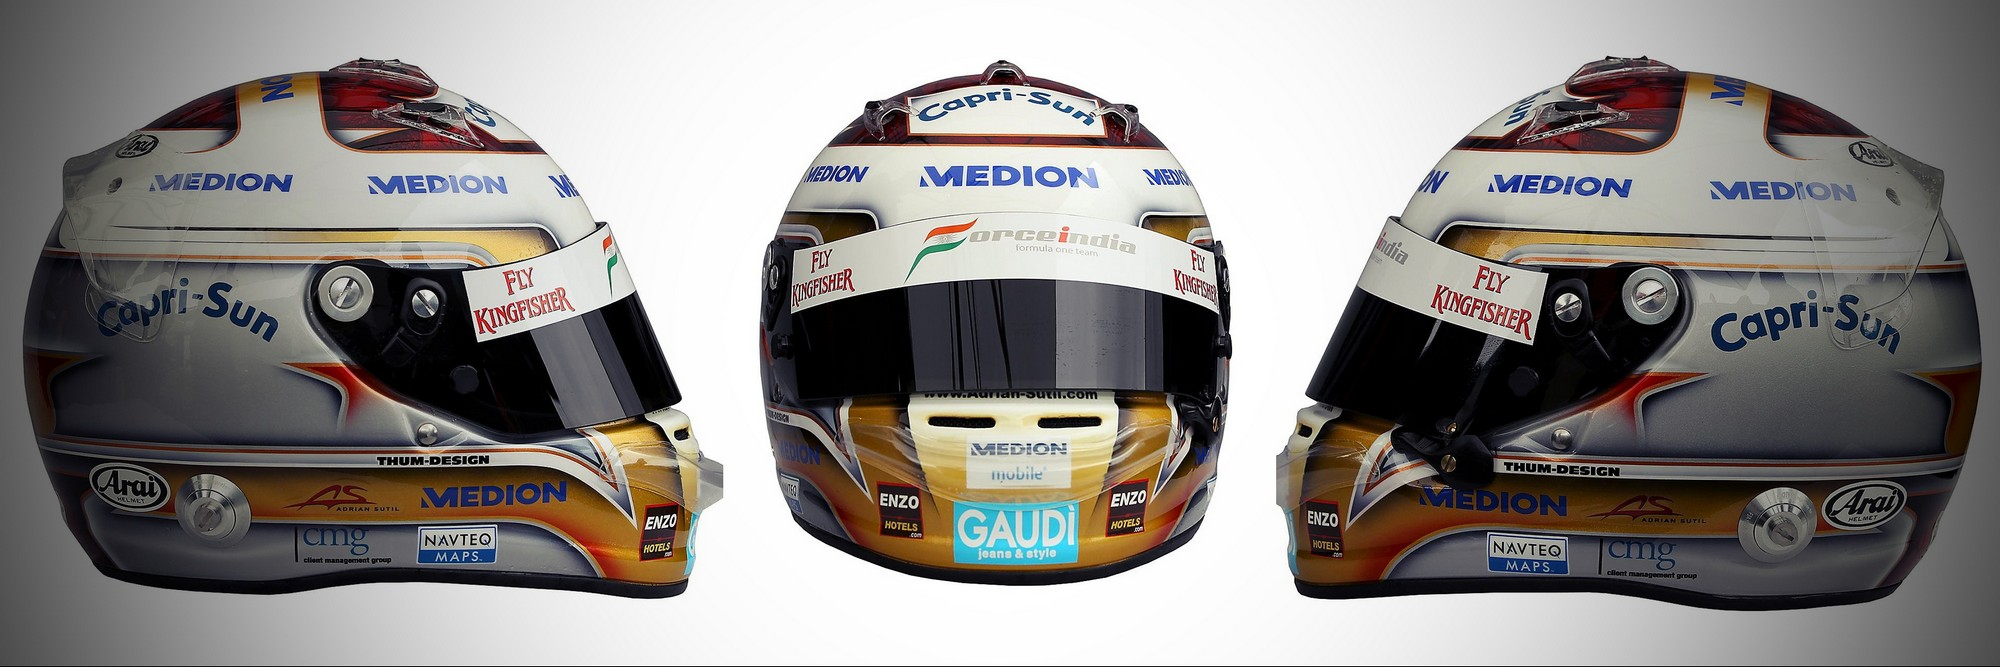 Шлем Адриана Сутиля на сезон 2011 года | 2011 helmet of Adrian Sutil